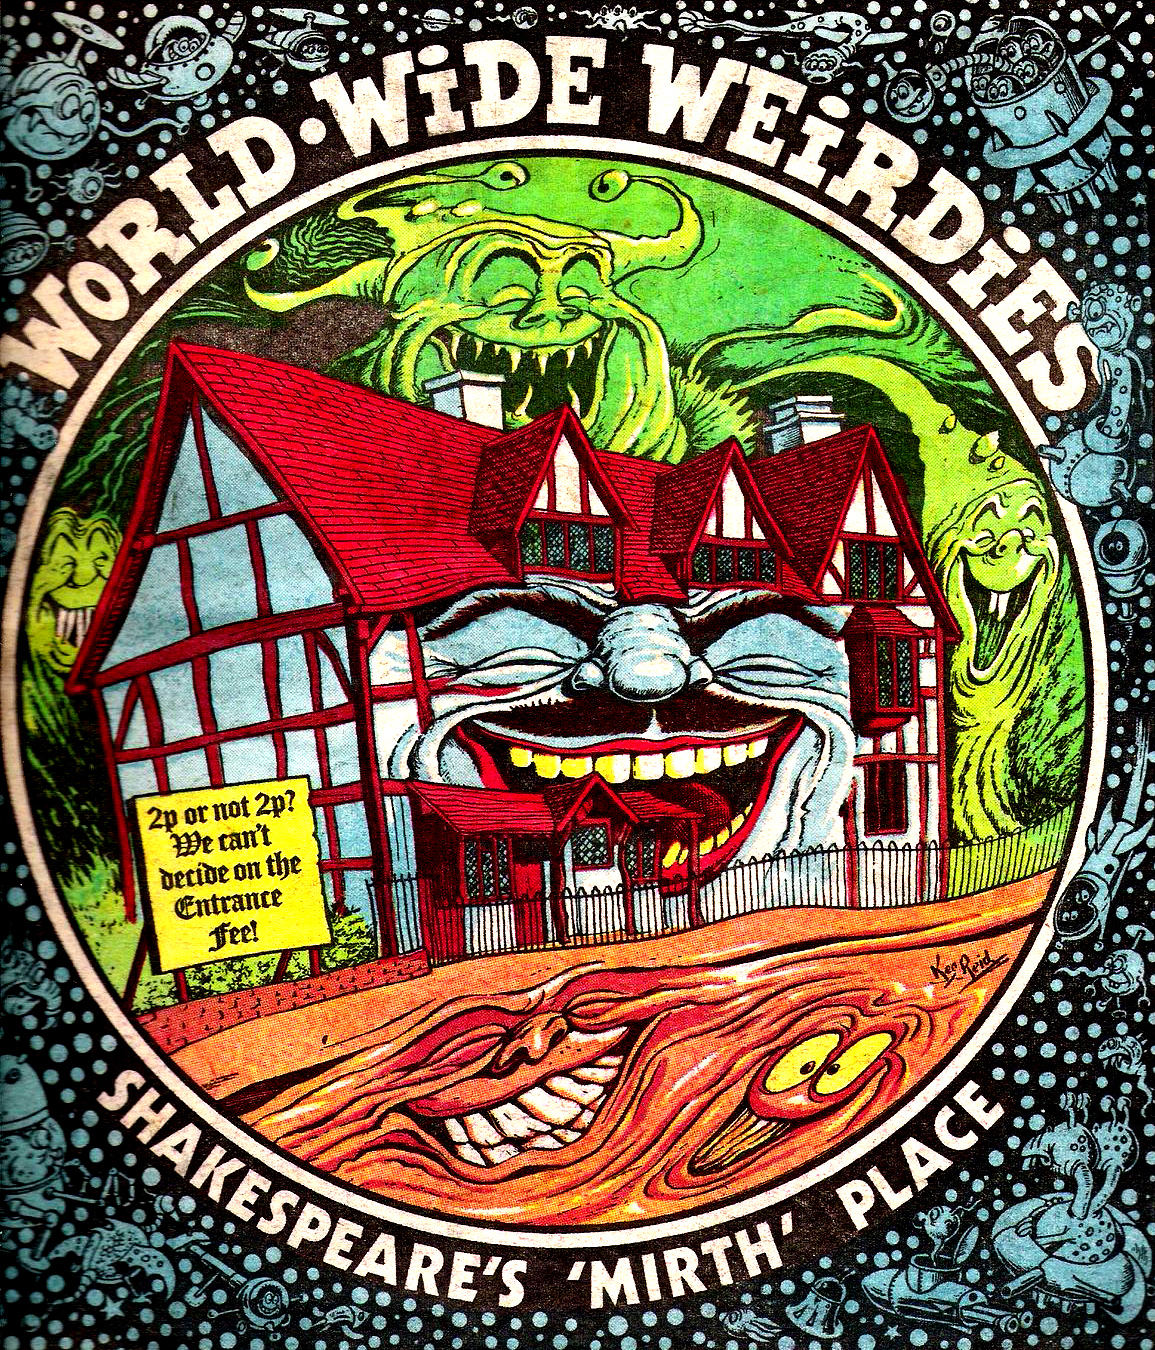 Ken Reid - World Wide Weirdies 43